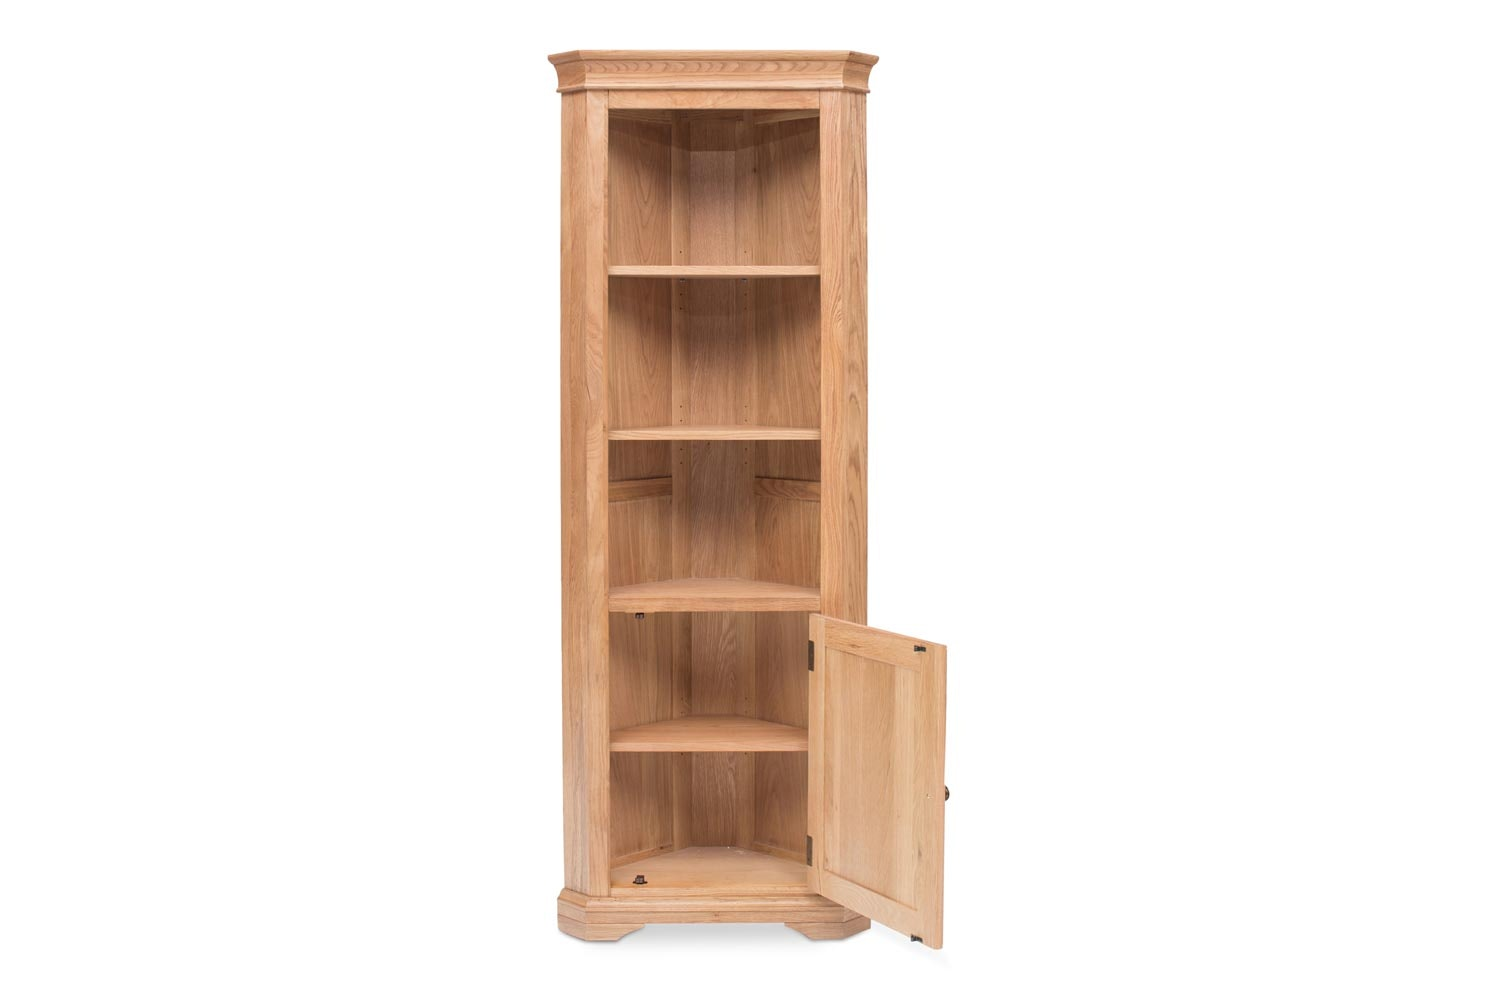 Prunella Corner Display Cabinet